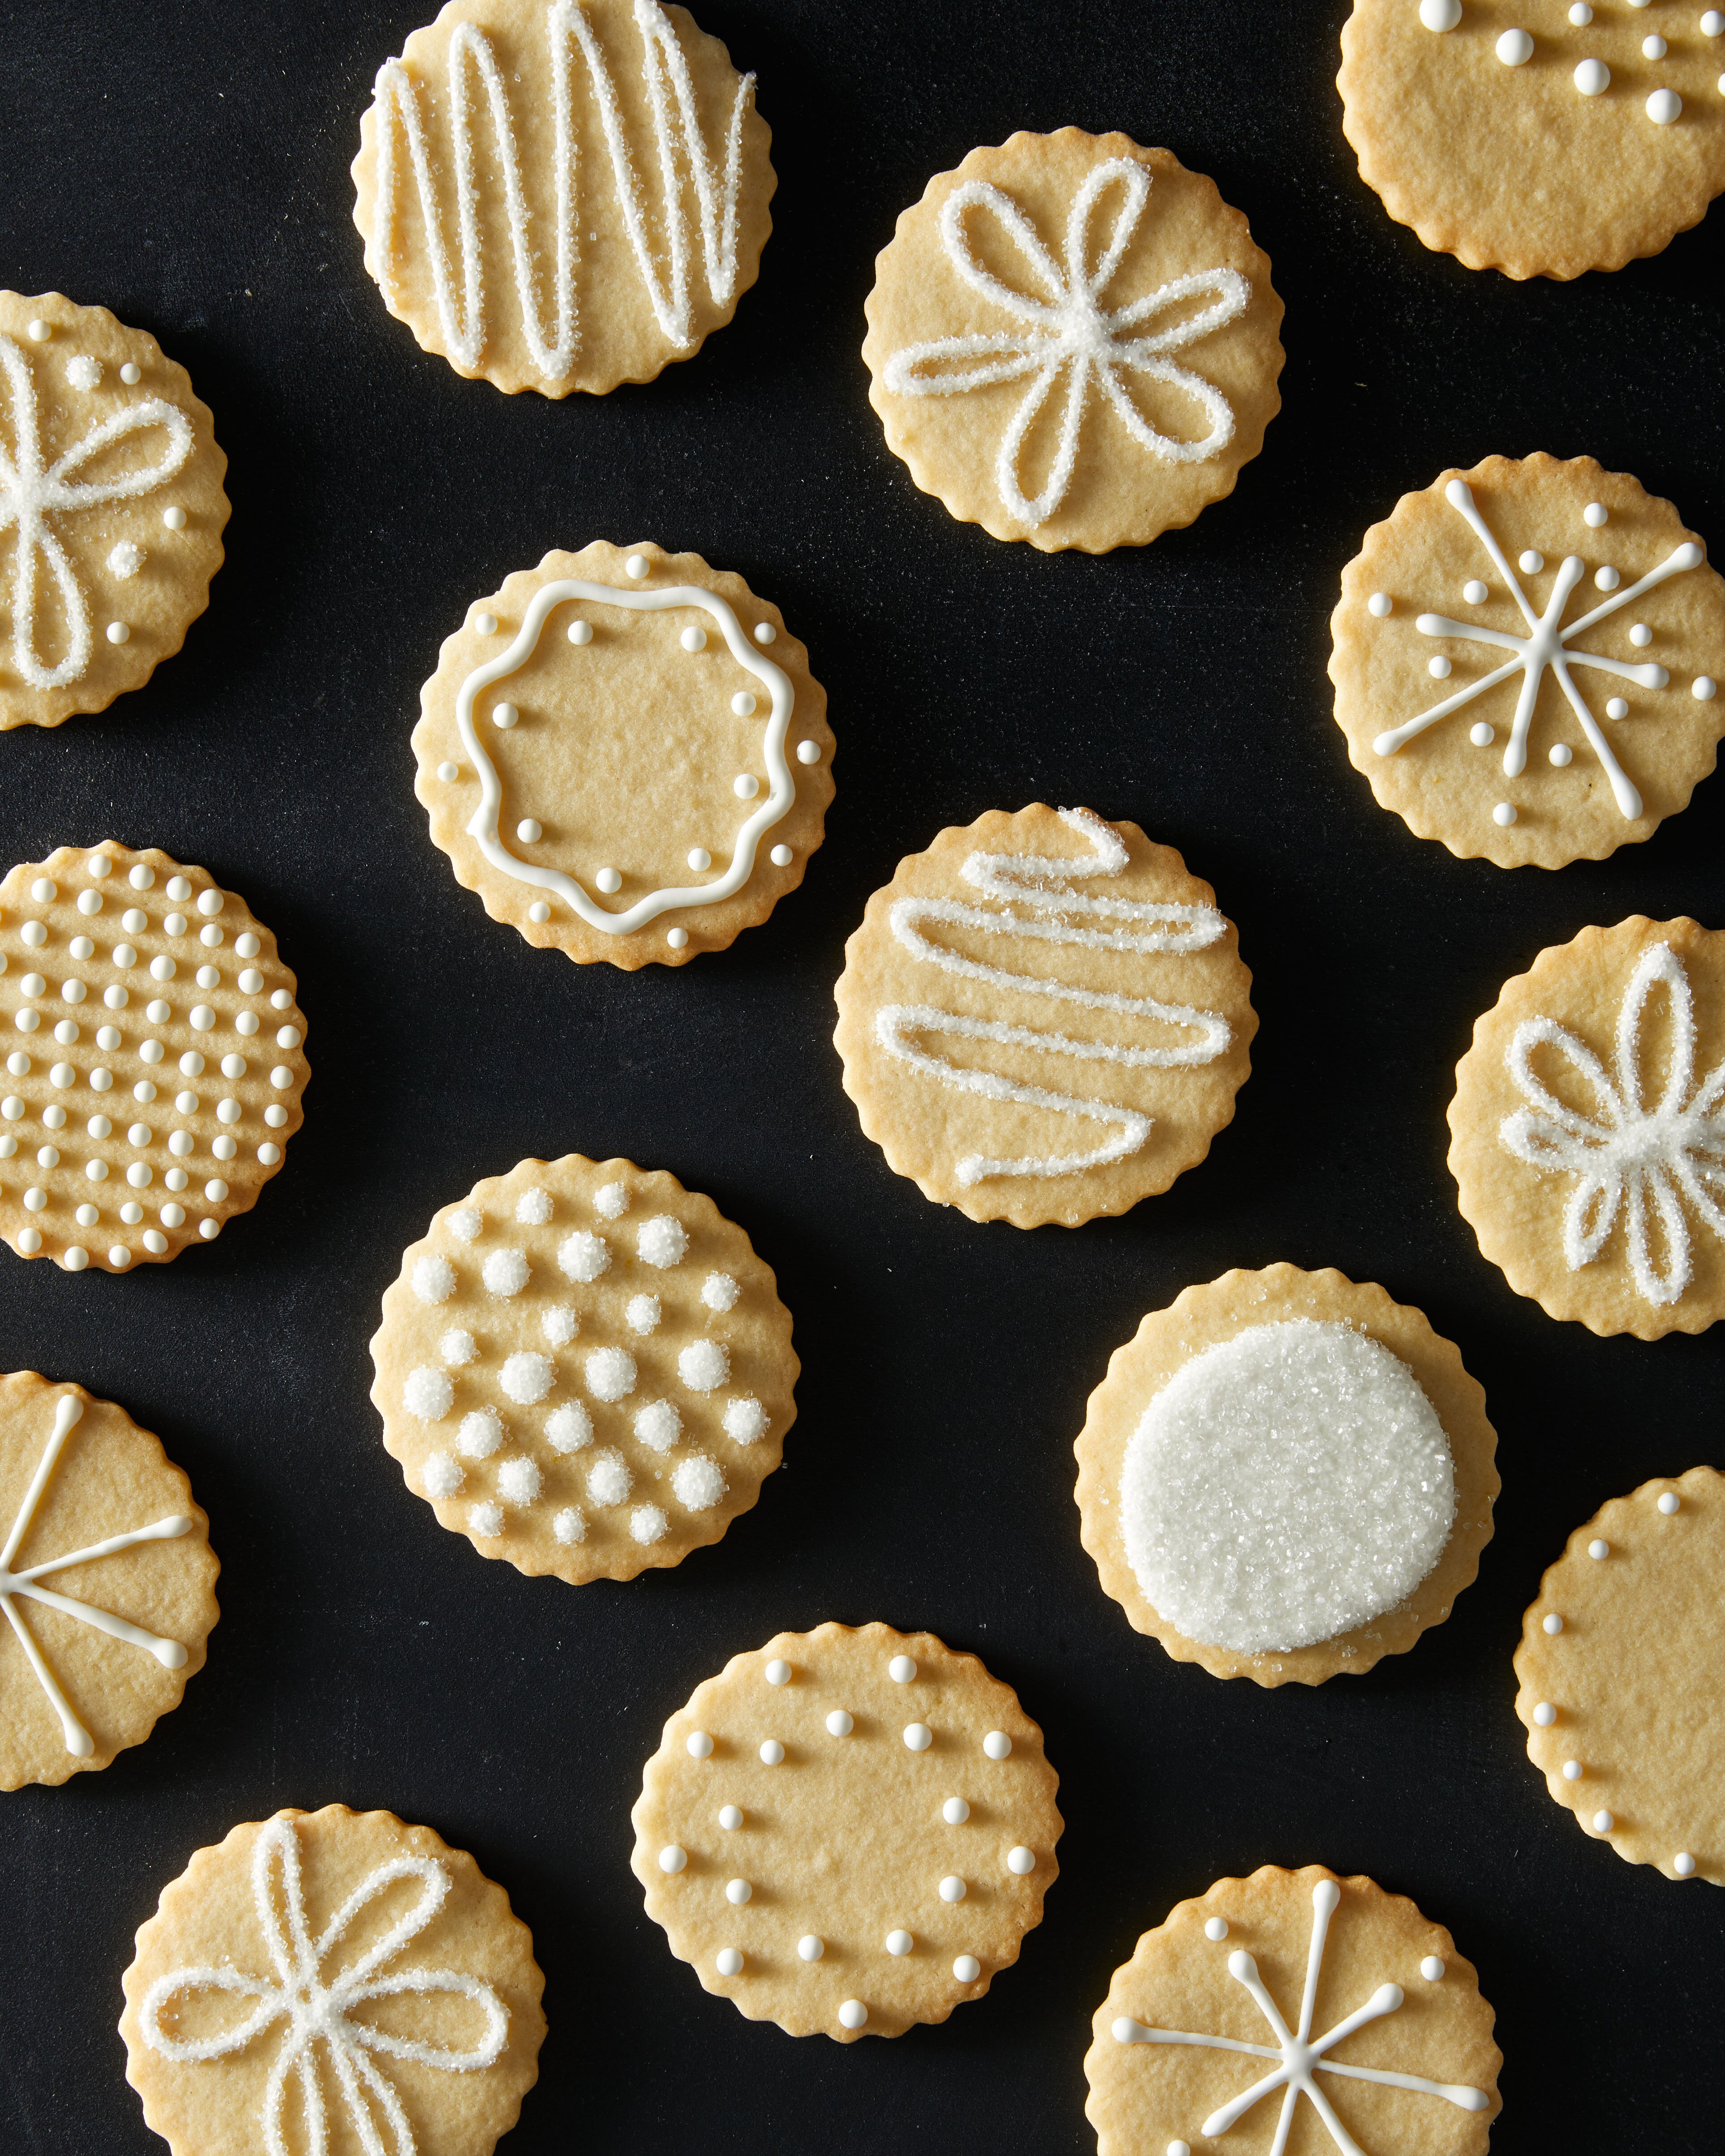 Favorite Christmas Cookies.Our Favorite Christmas Cookie Recipes From Biscotti To